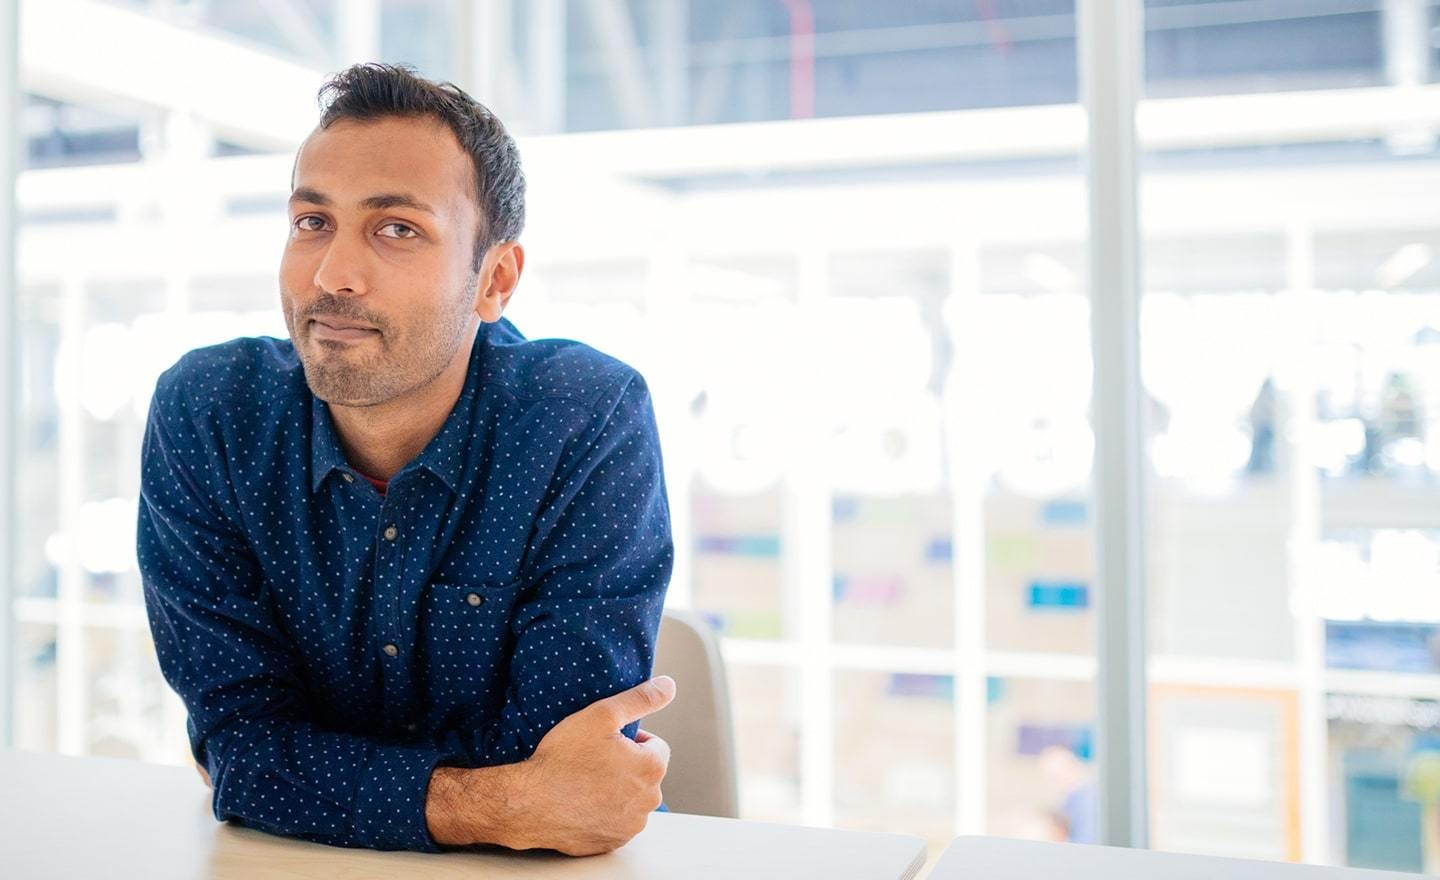 South Asian man with crossed arms in a conference room